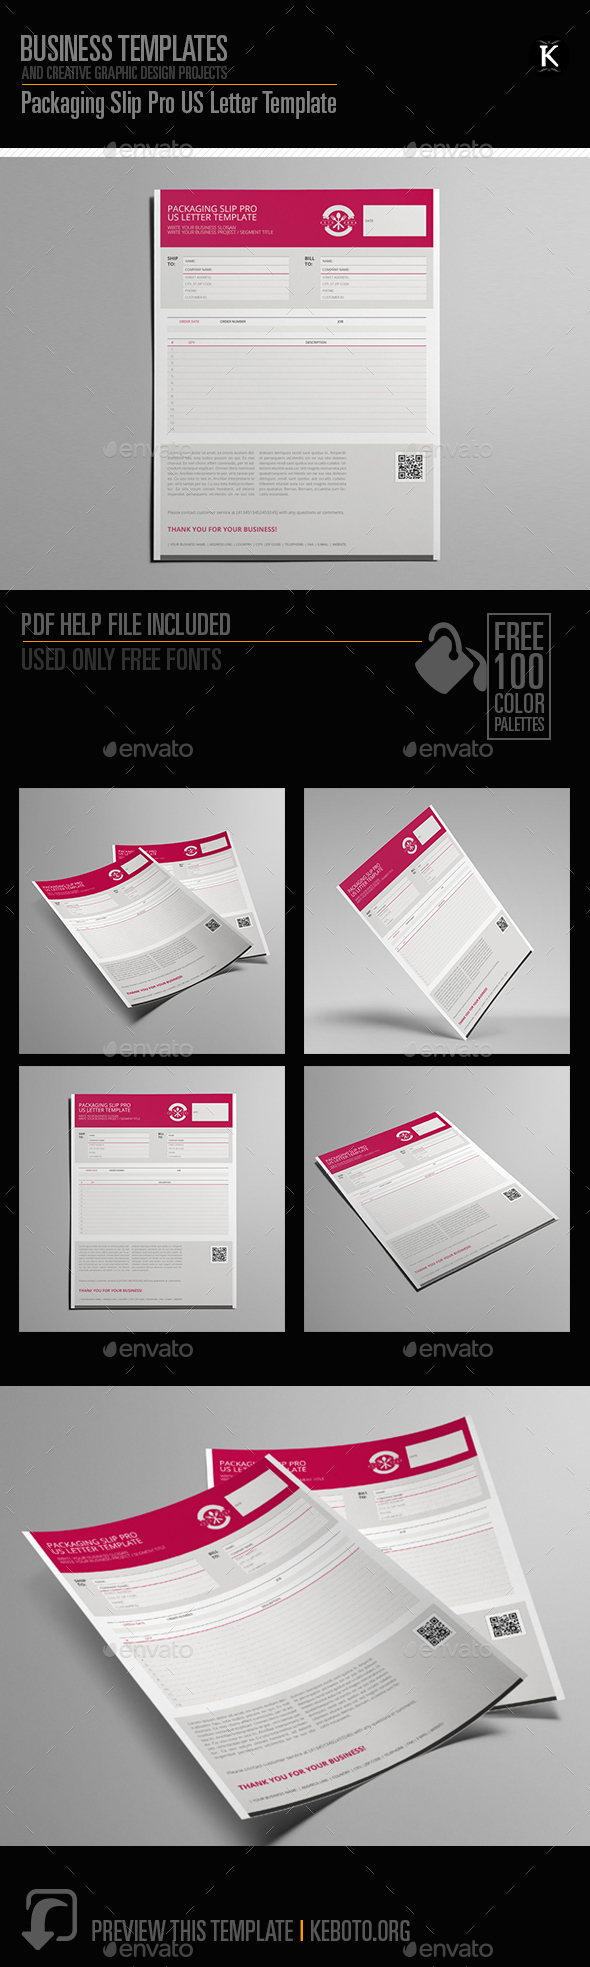 Packaging Slip Pro US Letter Template - Miscellaneous Print Templates